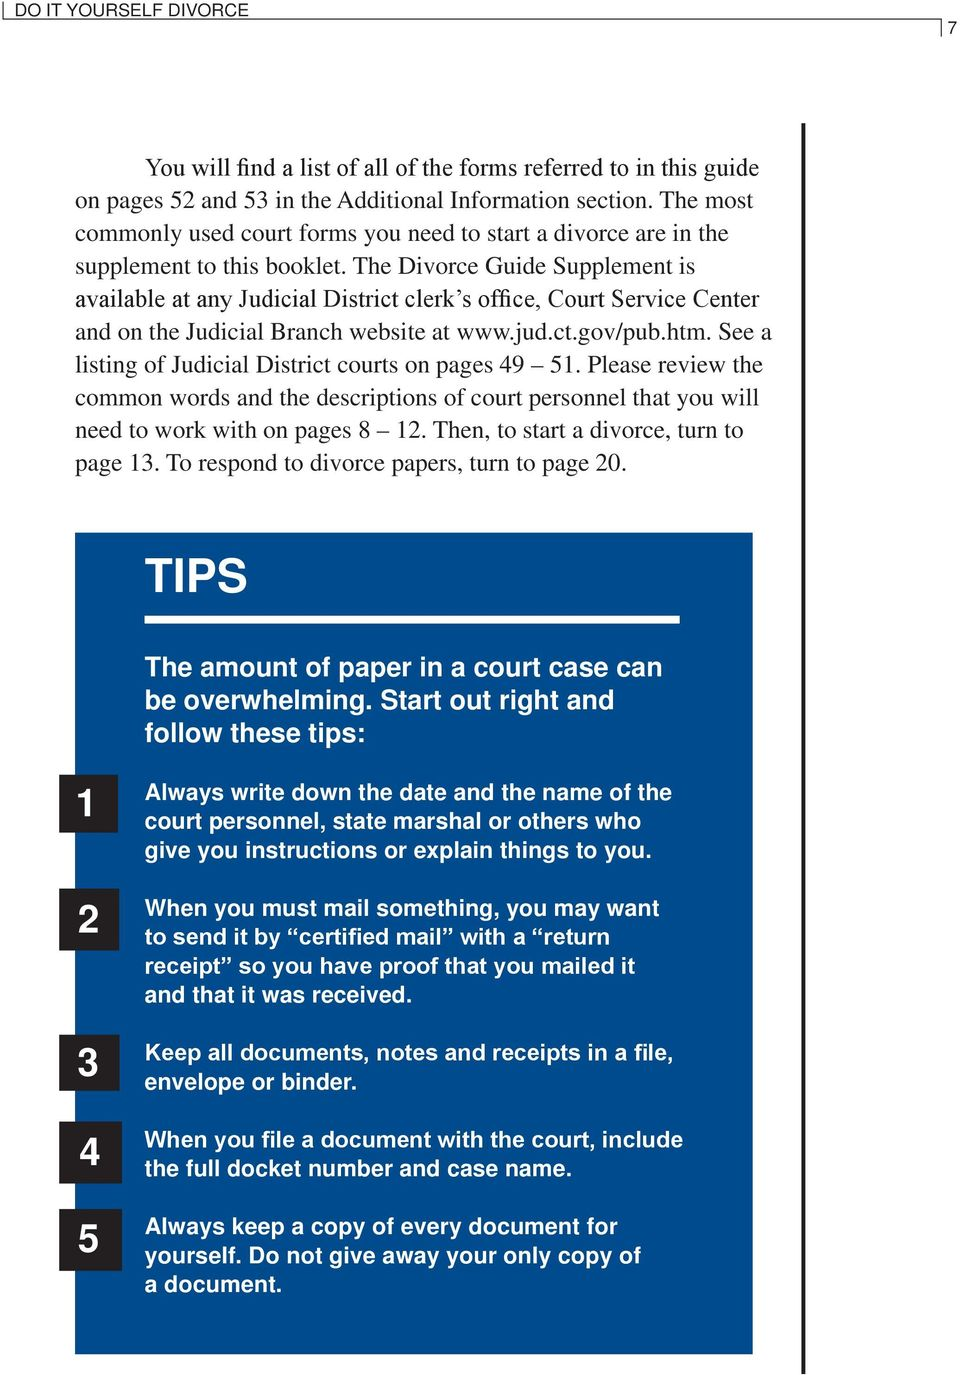 The Divorce Guide Supplement is available at any Judicial District clerk s office, Court Service Center and on the Judicial Branch website at www.jud.ct.gov/pub.htm.